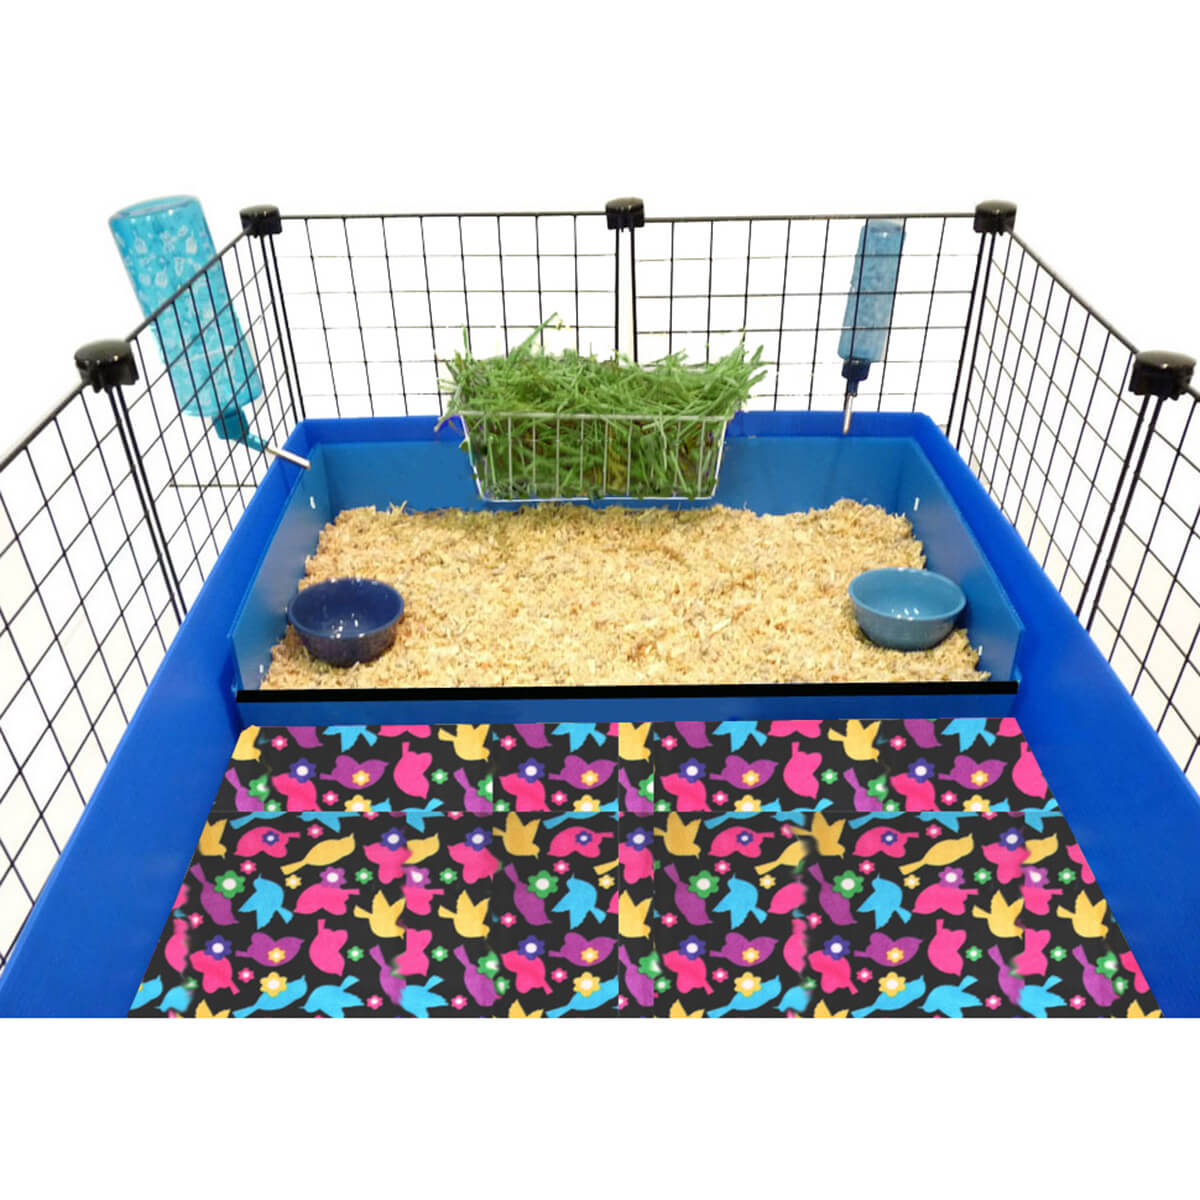 how to cut coroplast for guinea pig cage